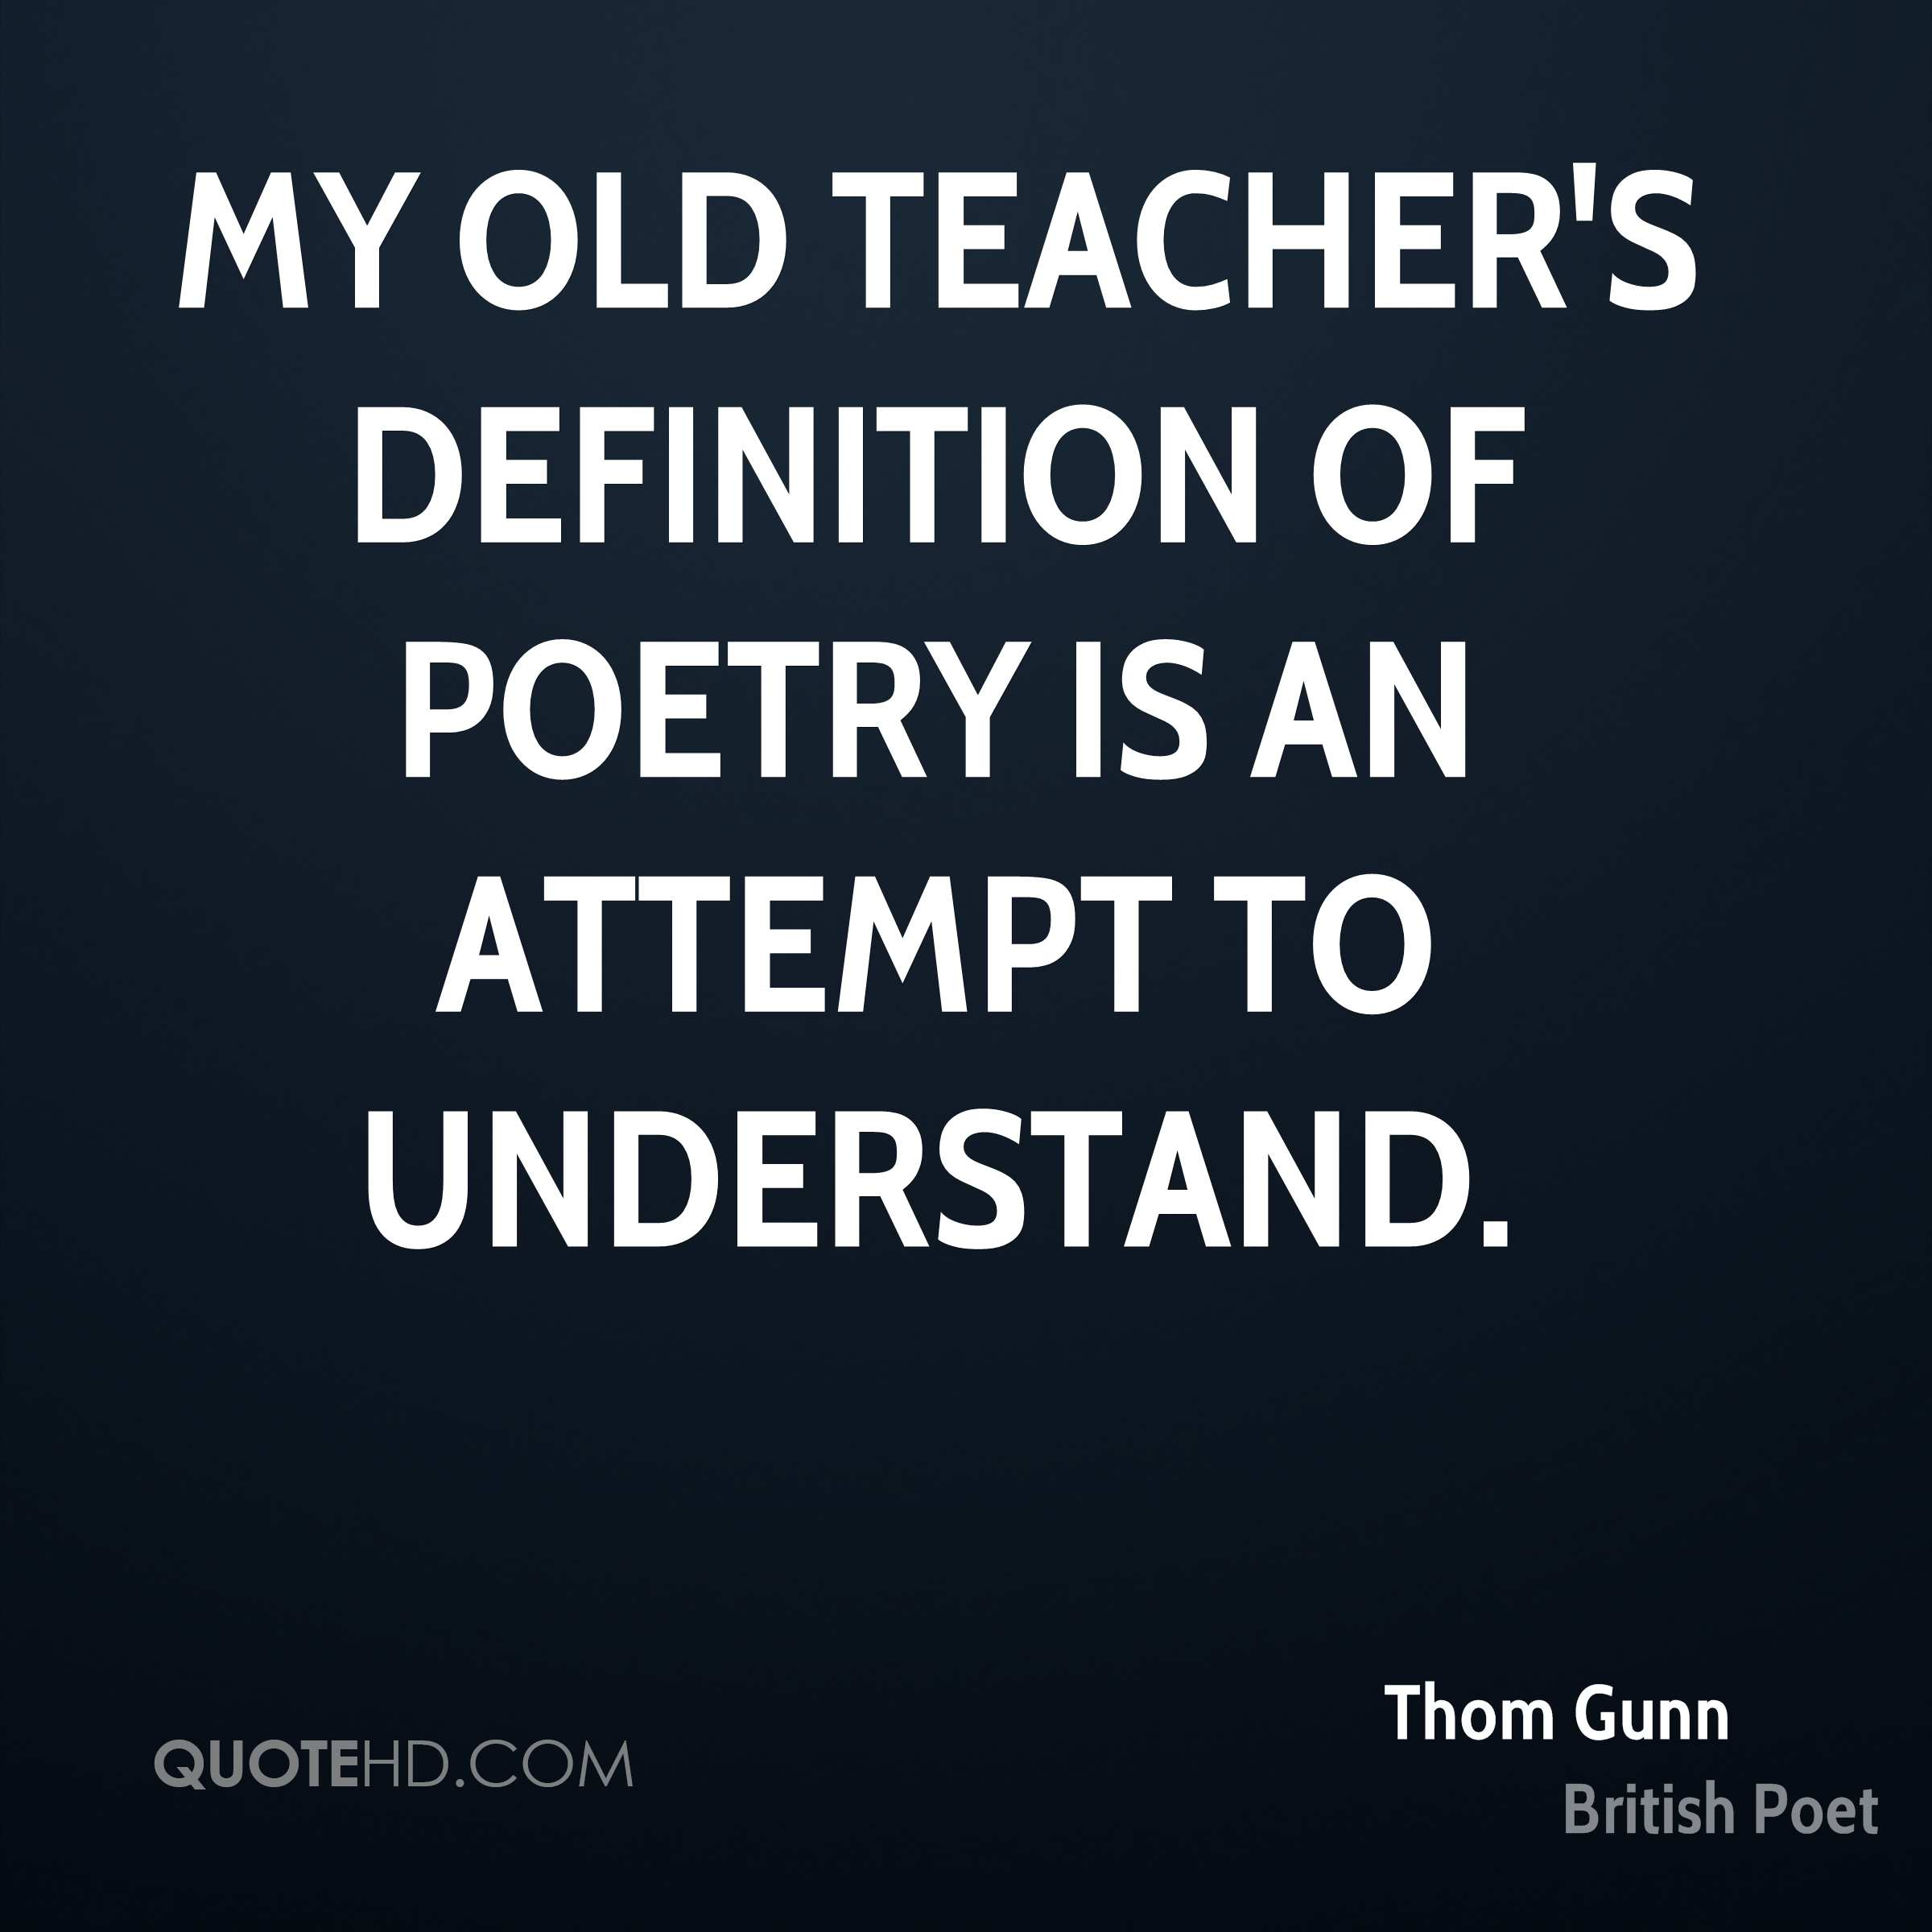 My old teacher's definition of poetry is an attempt to understand.